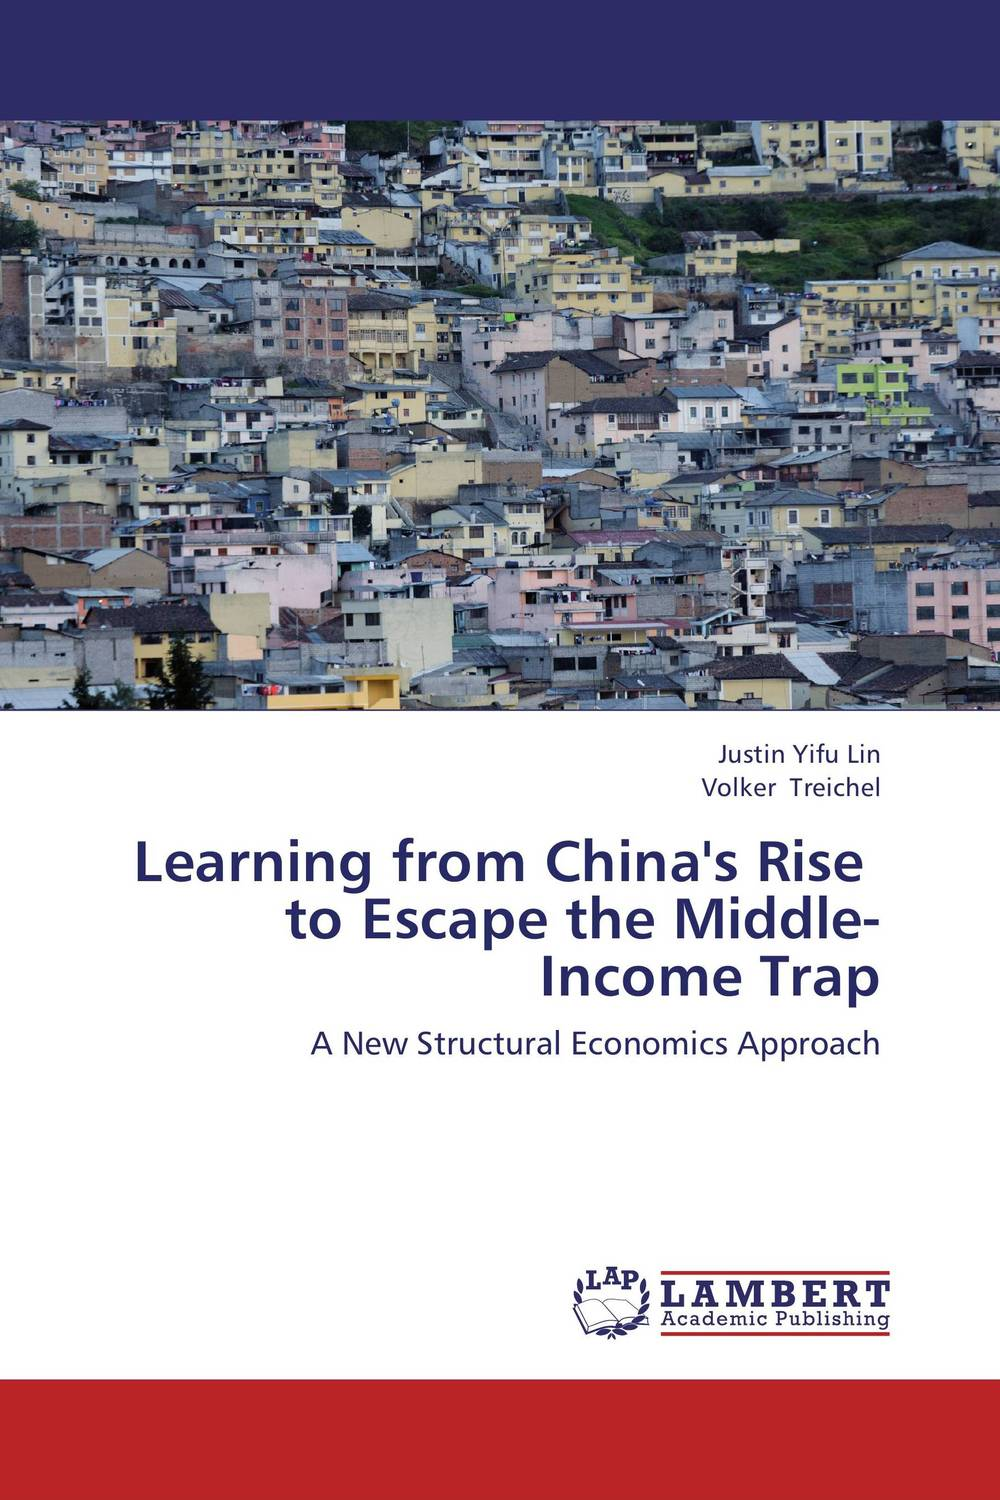 Фото Learning from China's Rise to Escape the Middle-Income Trap finance and investments